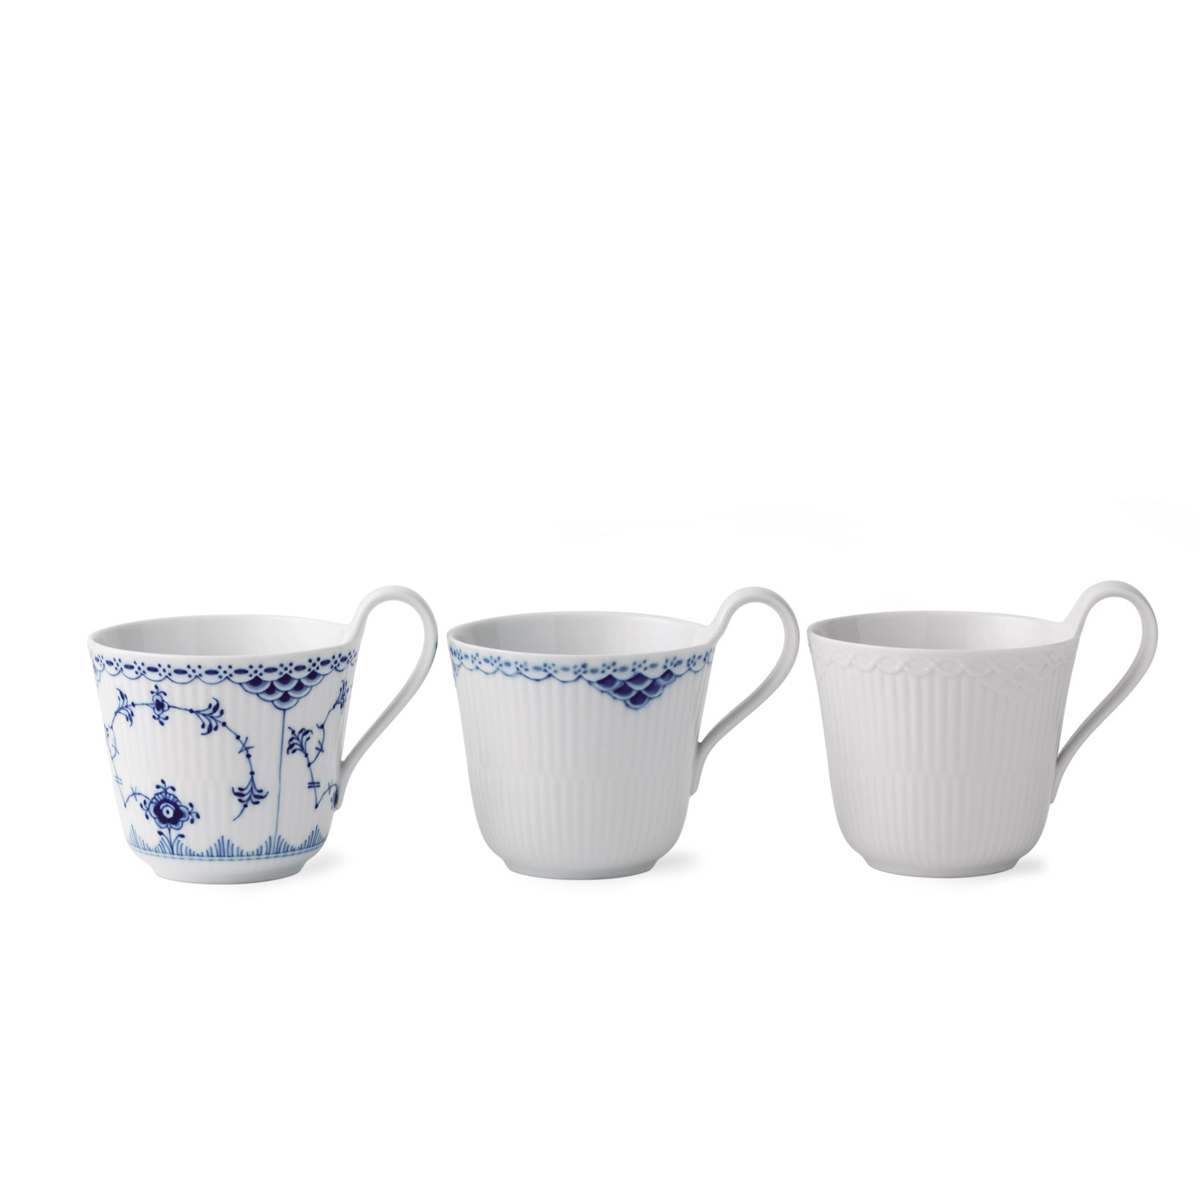 Royal Copenhagen, Gifts With History Laced Mugs 11oz. Set of Three